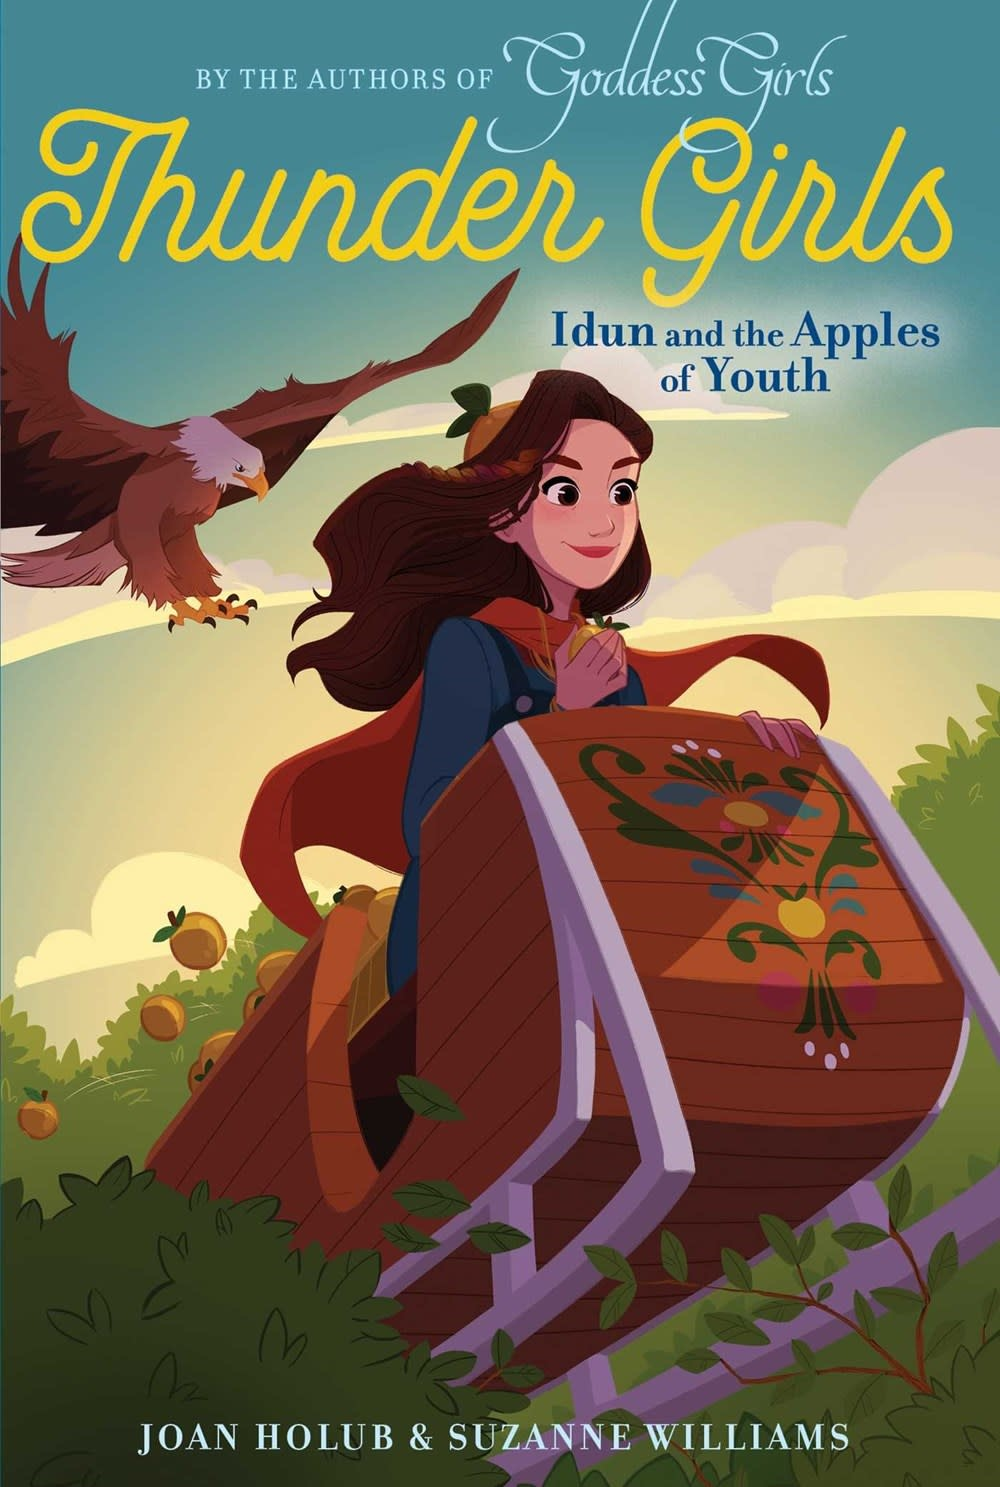 Aladdin Thunder Girls: Idun and the Apples of Youth